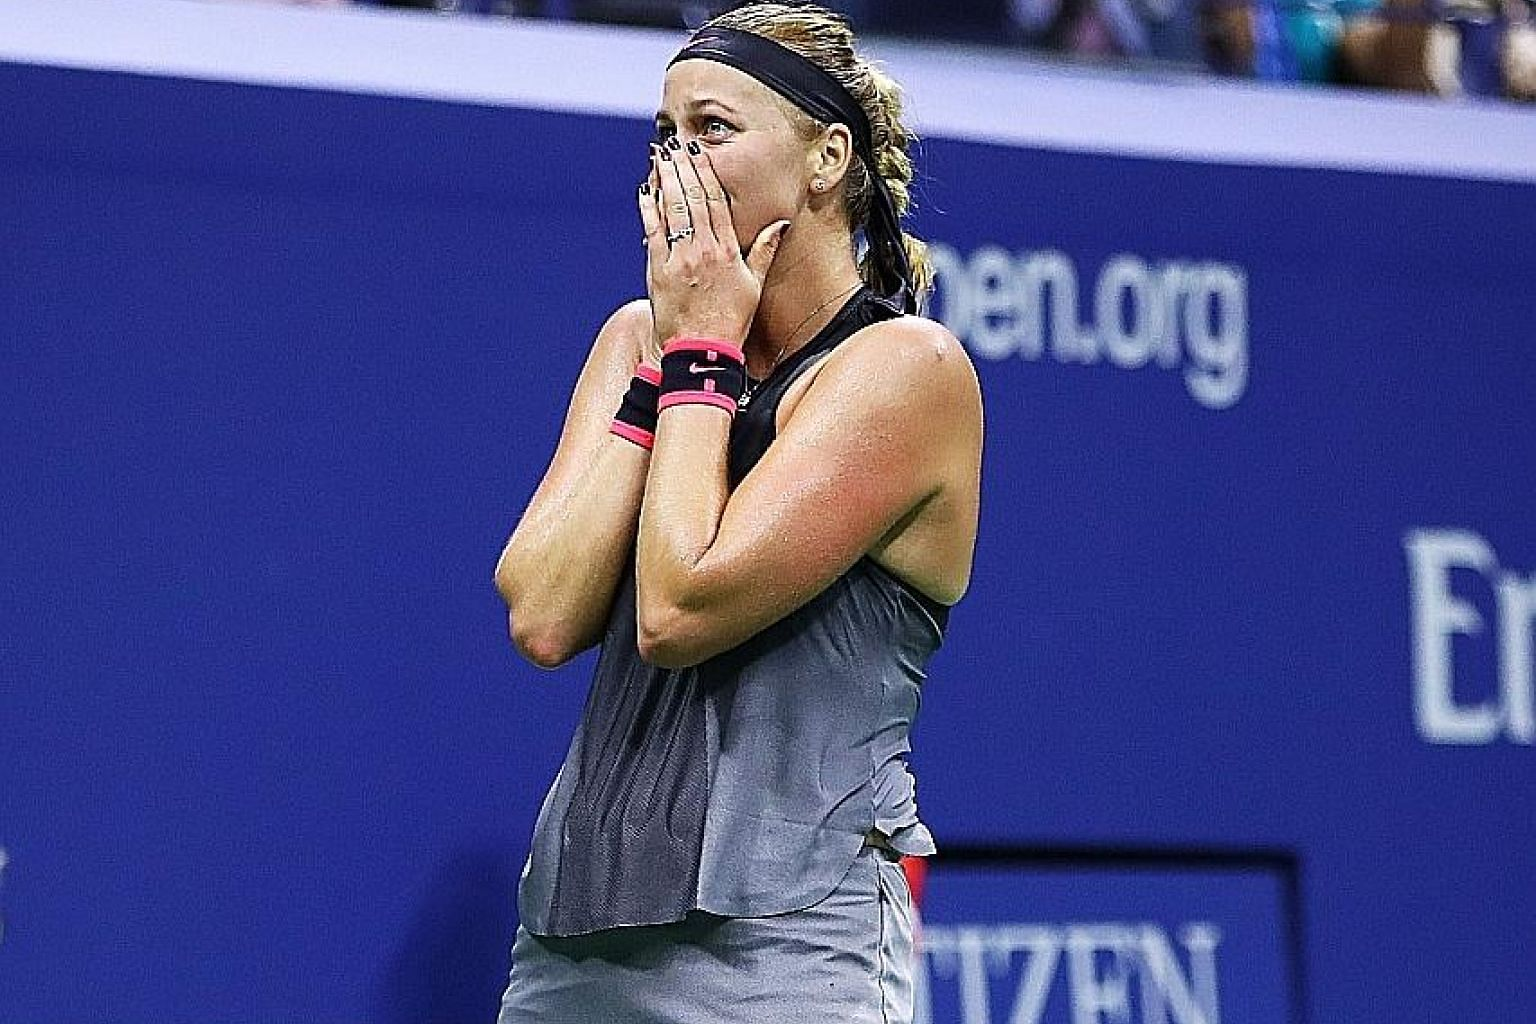 Petra Kvitova can hardly believe she has knocked out Wimbledon champion Garbine Muguruza in the fourth round of the US Open. The Czech is on the comeback trail after her left playing hand was slashed by an intruder - an injury that threatened to end